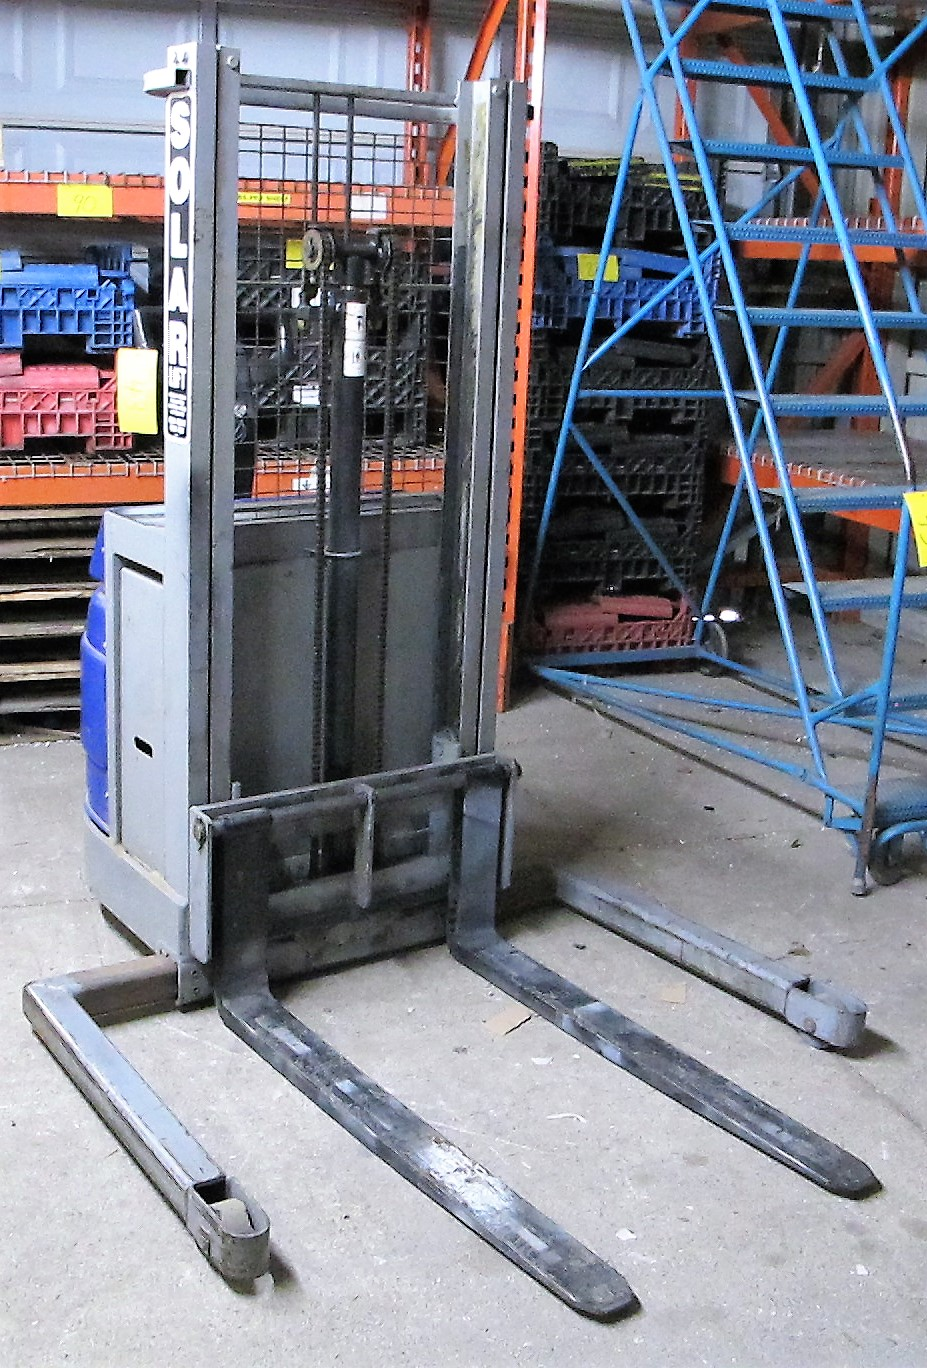 """BLUE GIANT, BGS-90 ELECTRIC STACKER, 1500 LB CAP, 90"""" LIFT, 2 STAGE, S/N 04-30010 - Image 4 of 4"""